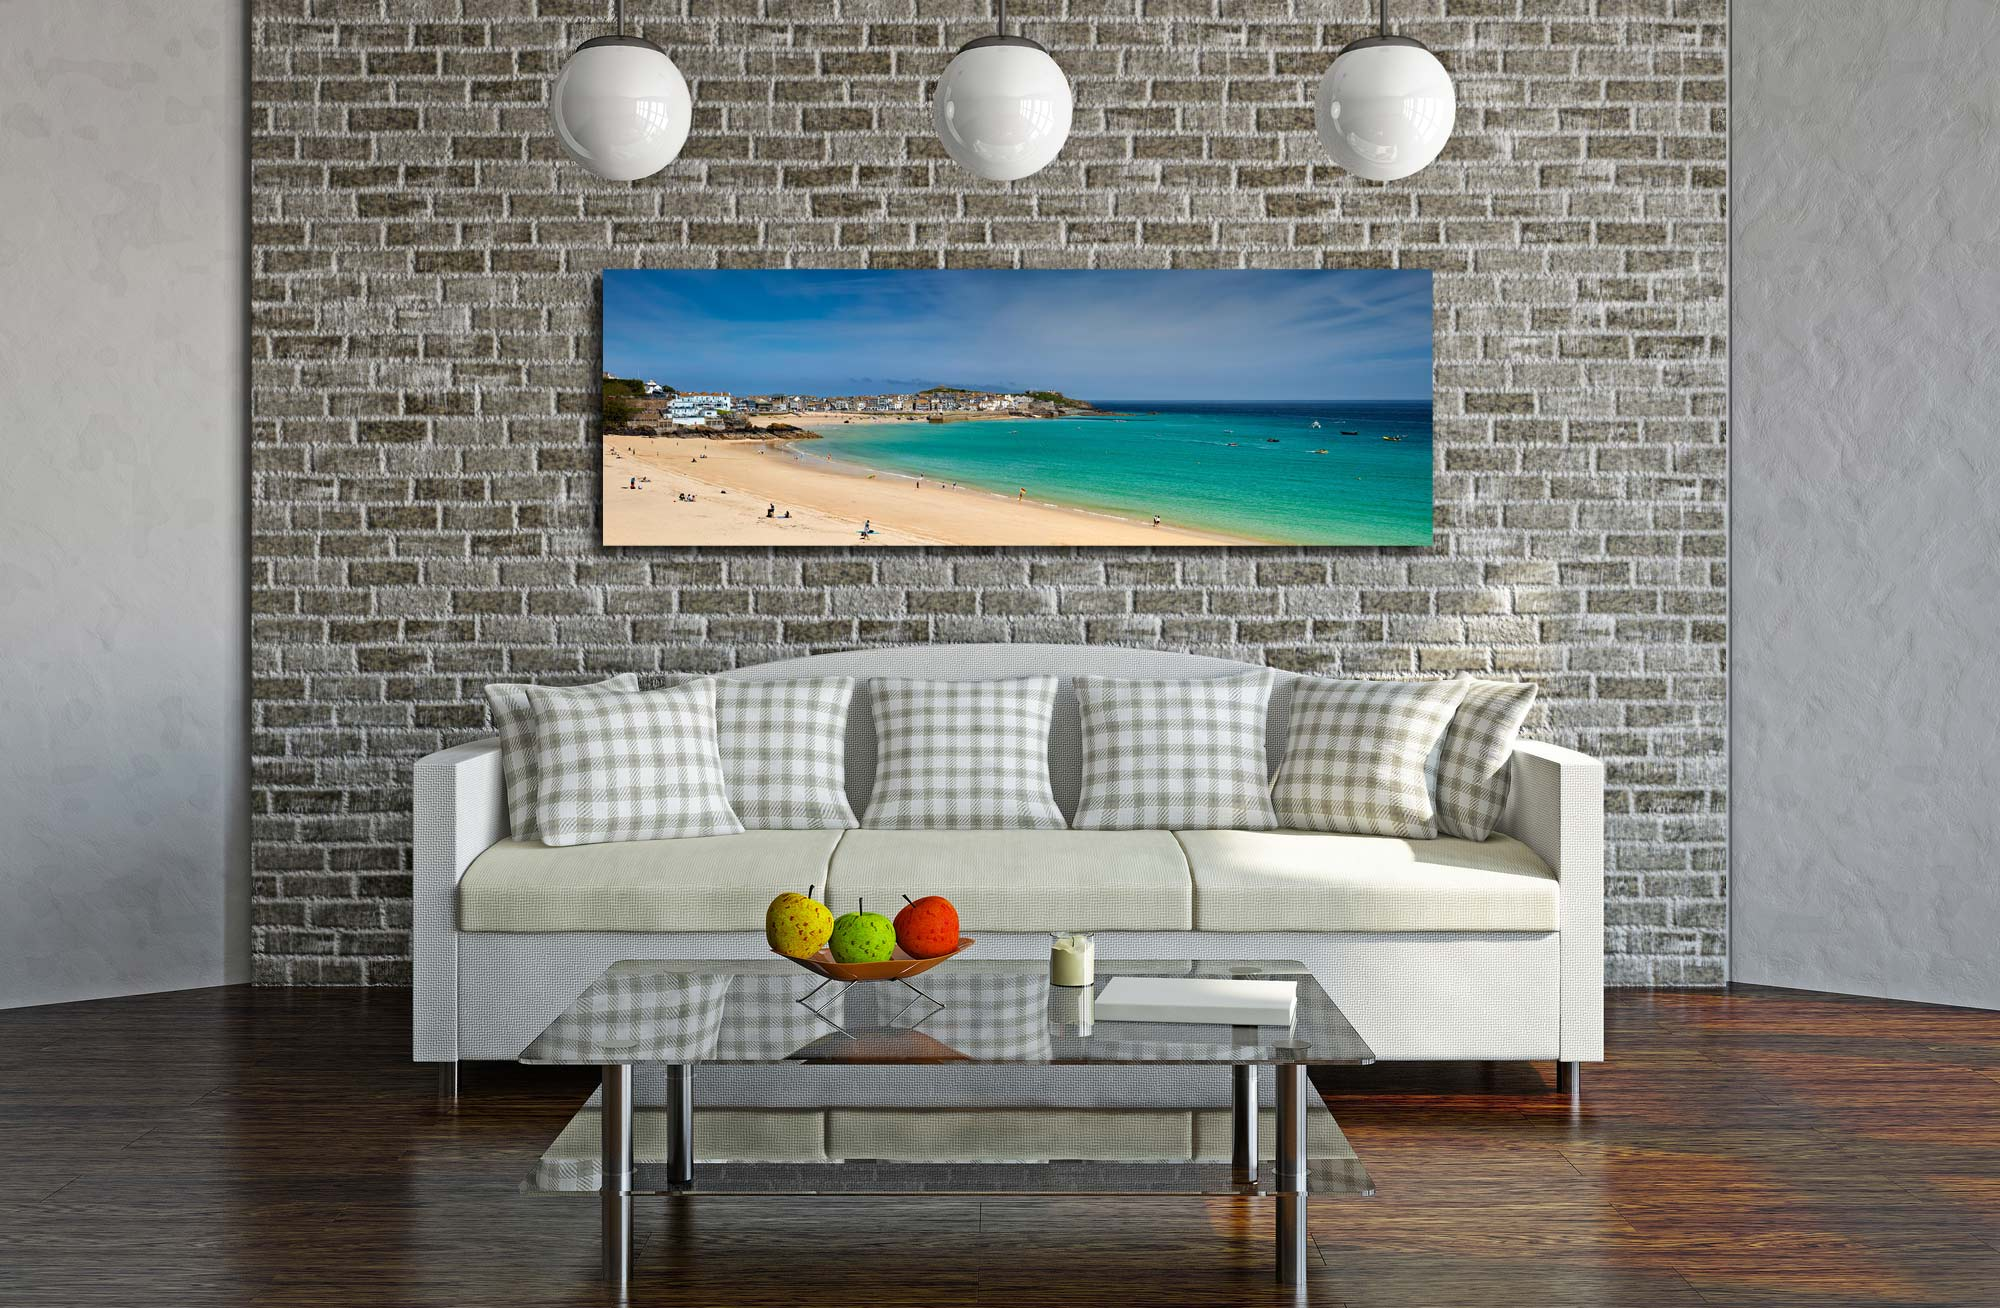 View over the green waters of St Ives Bay from Porthminster Beach - Print Aluminium Backing With Acrylic Glazing on Wall